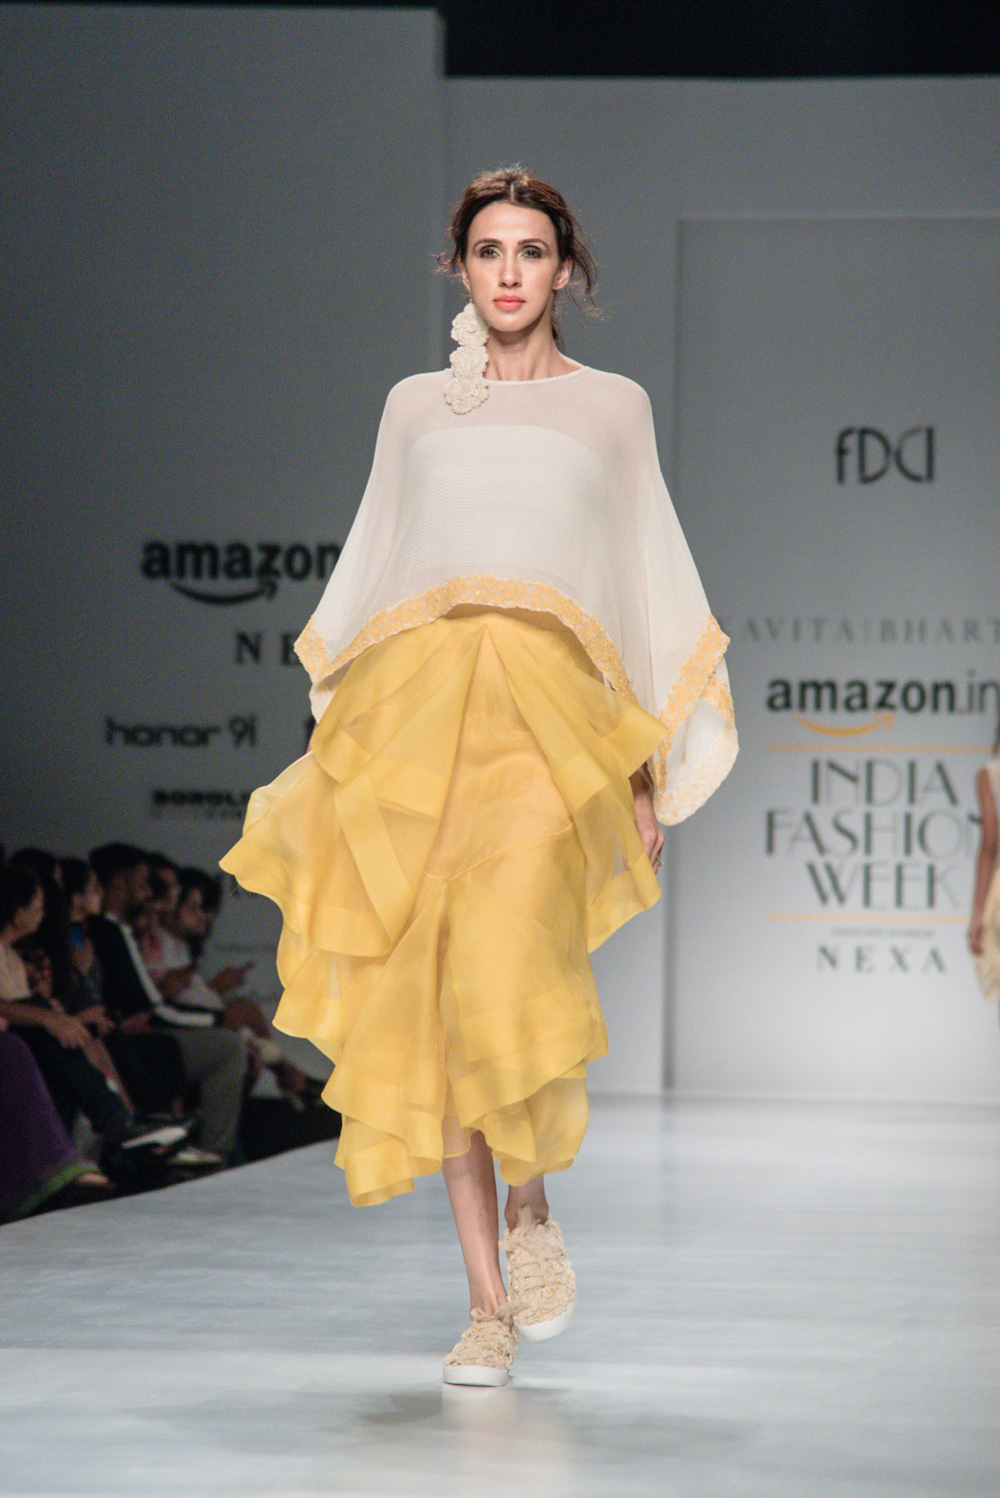 Kavita Bhartiya FDCI Amazon India Fashion Week Spring Summer 2018 Look 9